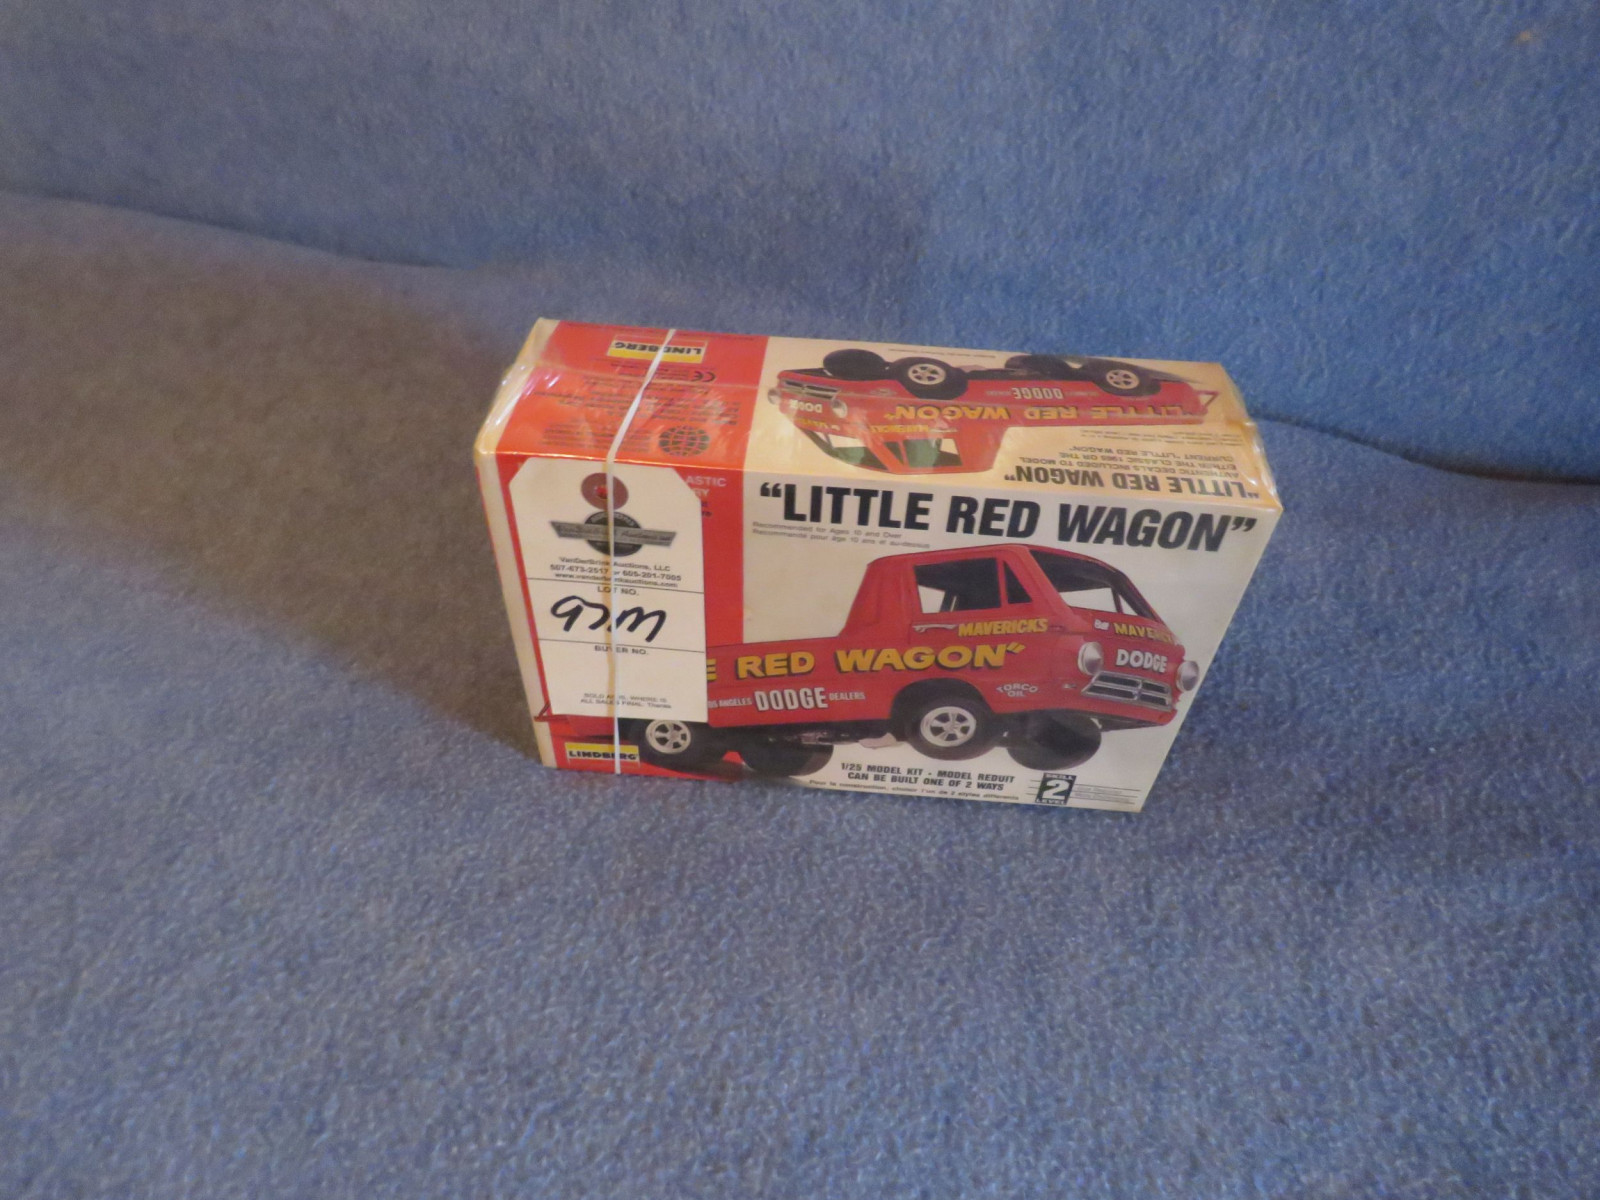 Lindberg Little Red Wagon 1/25th Scale Model NIB - Image 1